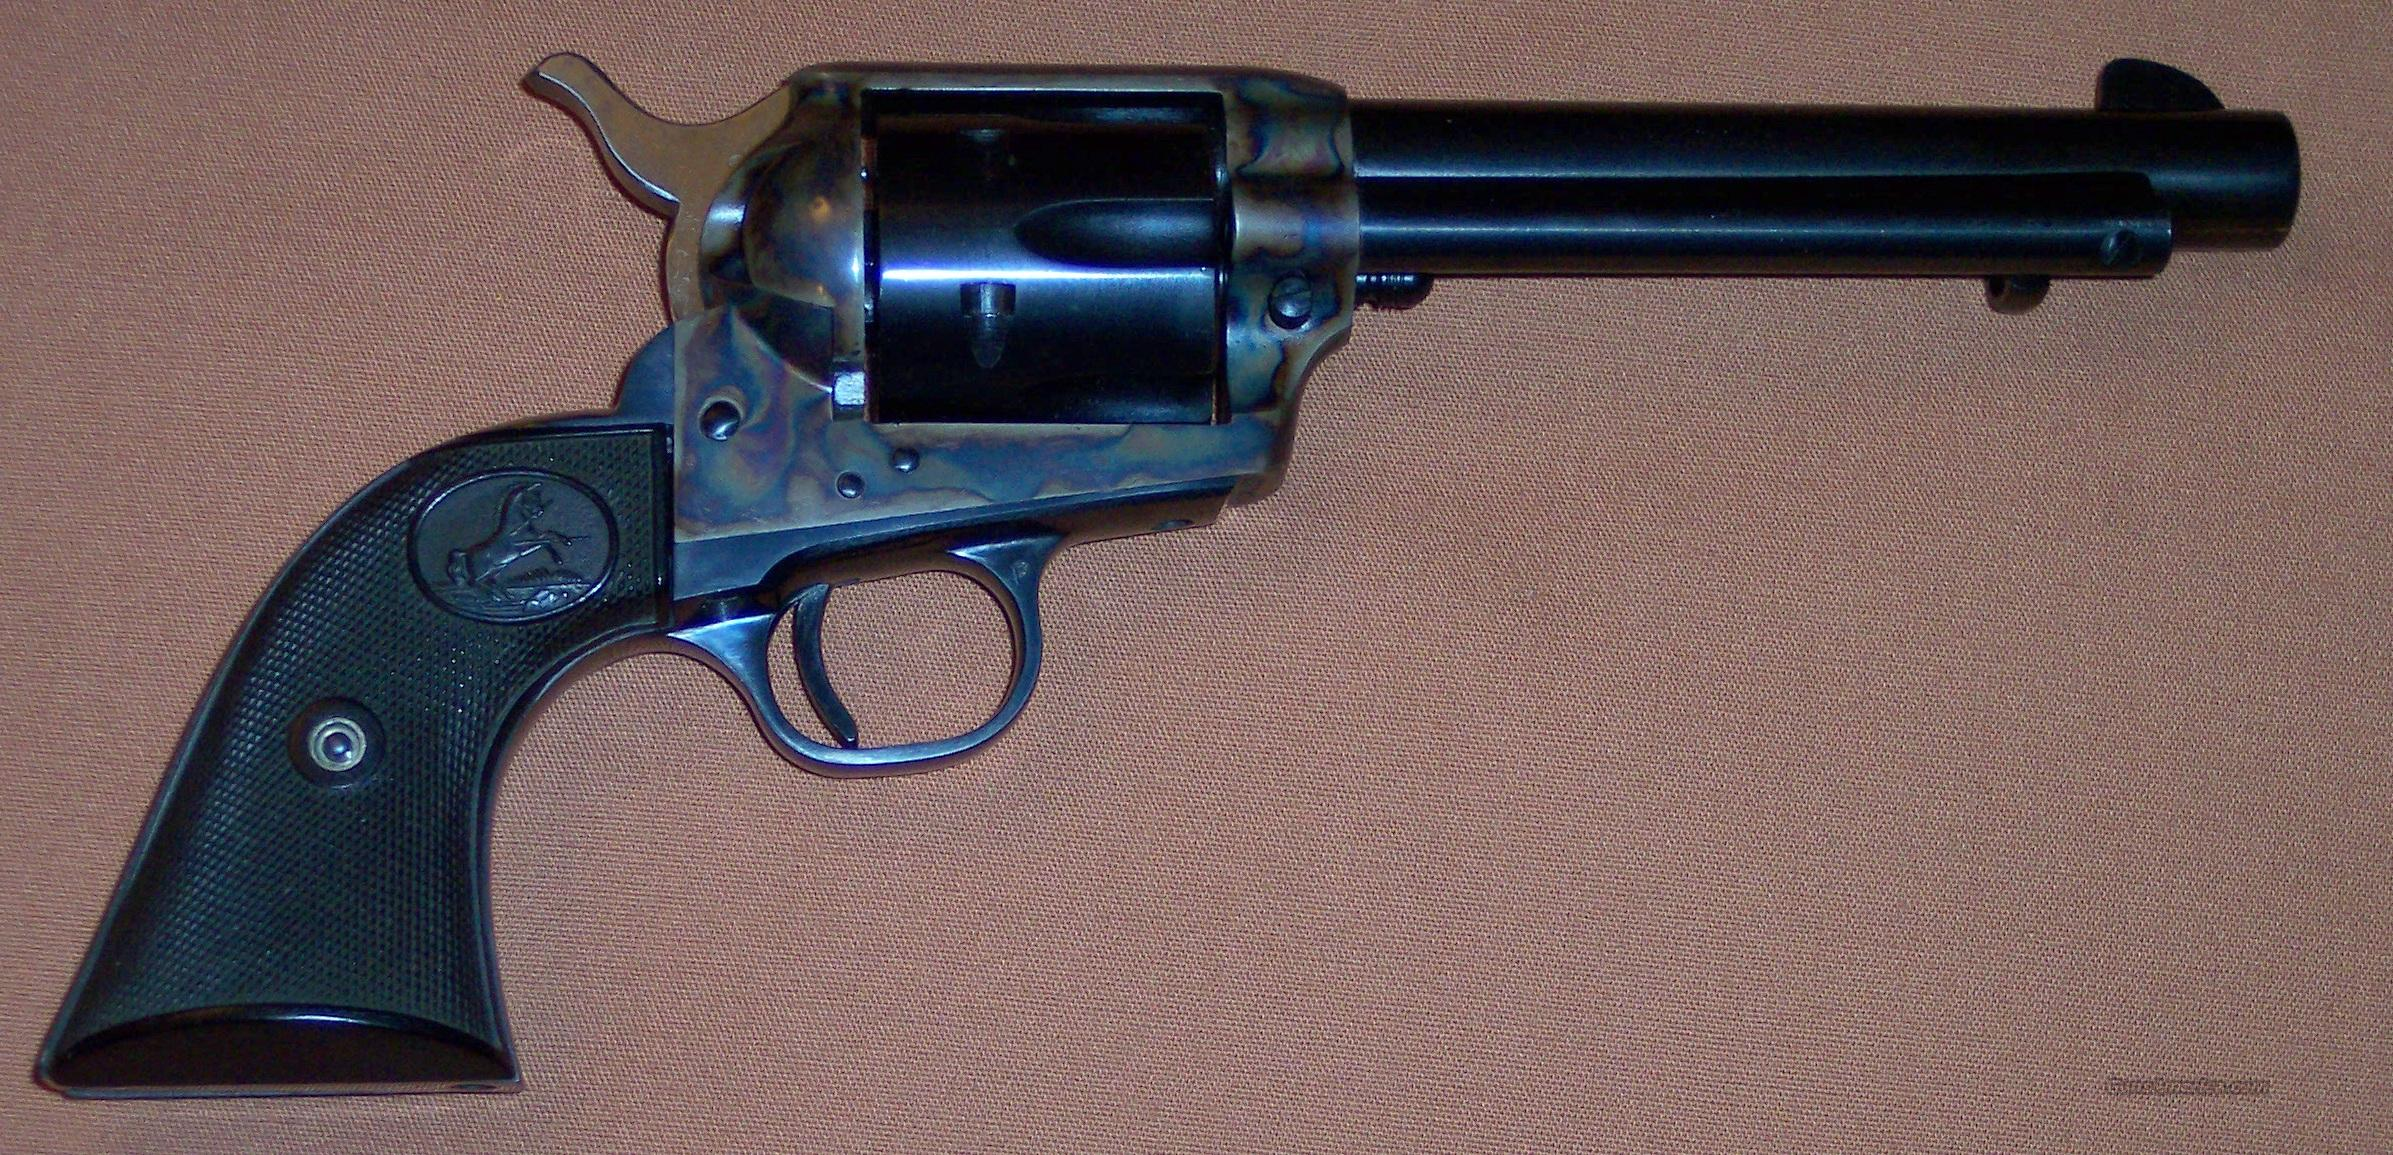 "Colt 2nd Generation Single Action Army SAA, 5.5"" Barrel, .357 Cal. with Stagecoach Box c. 1970  Guns > Pistols > Colt Single Action Revolvers - 2nd Gen."